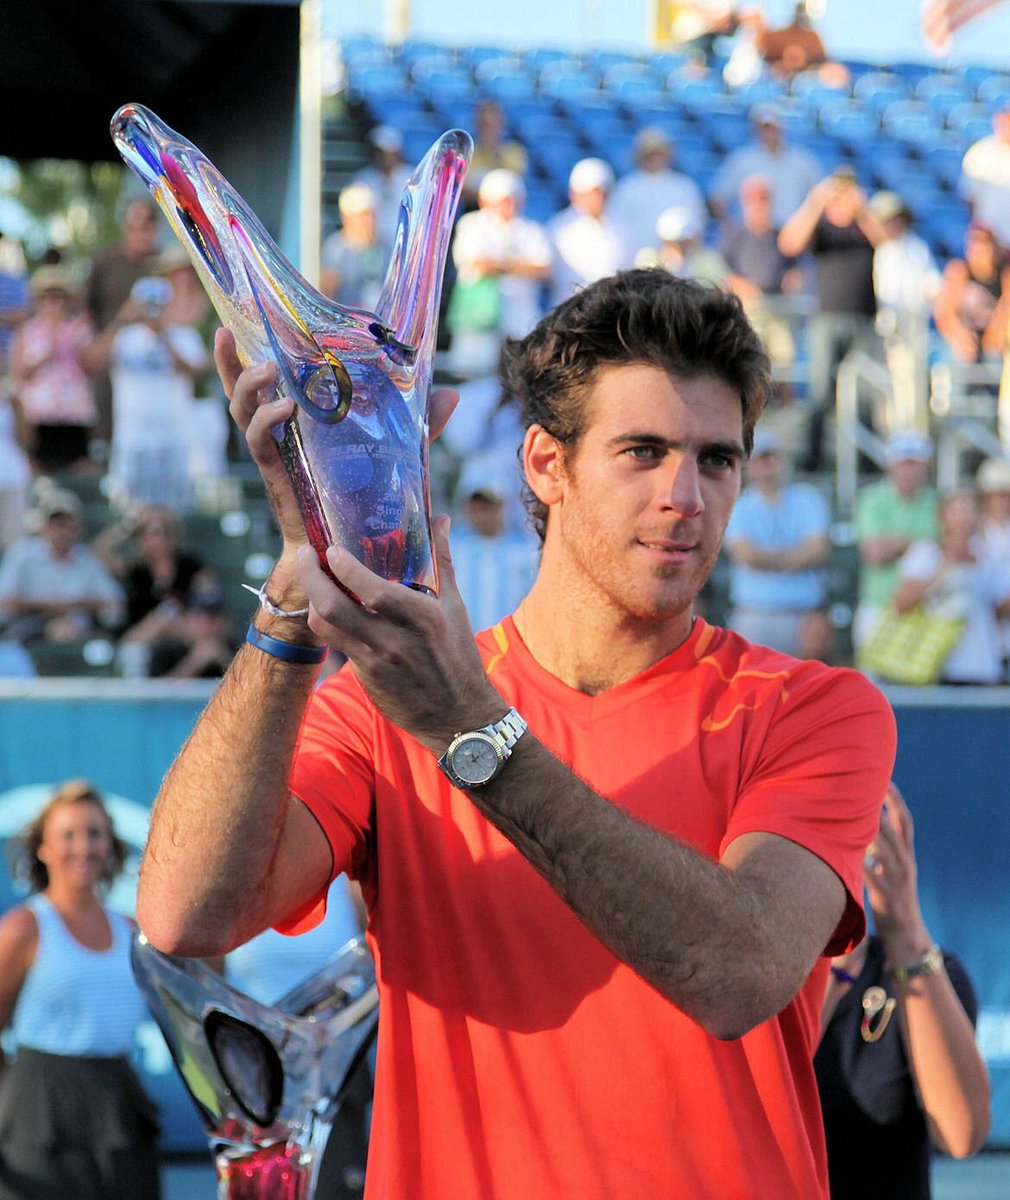 TODAY IS THE DAY! #delporeturns to the #DelrayBeachOpen courts for the 1st time since his 2011 title @delpotrojuan https://t.co/r10AfxCIvo